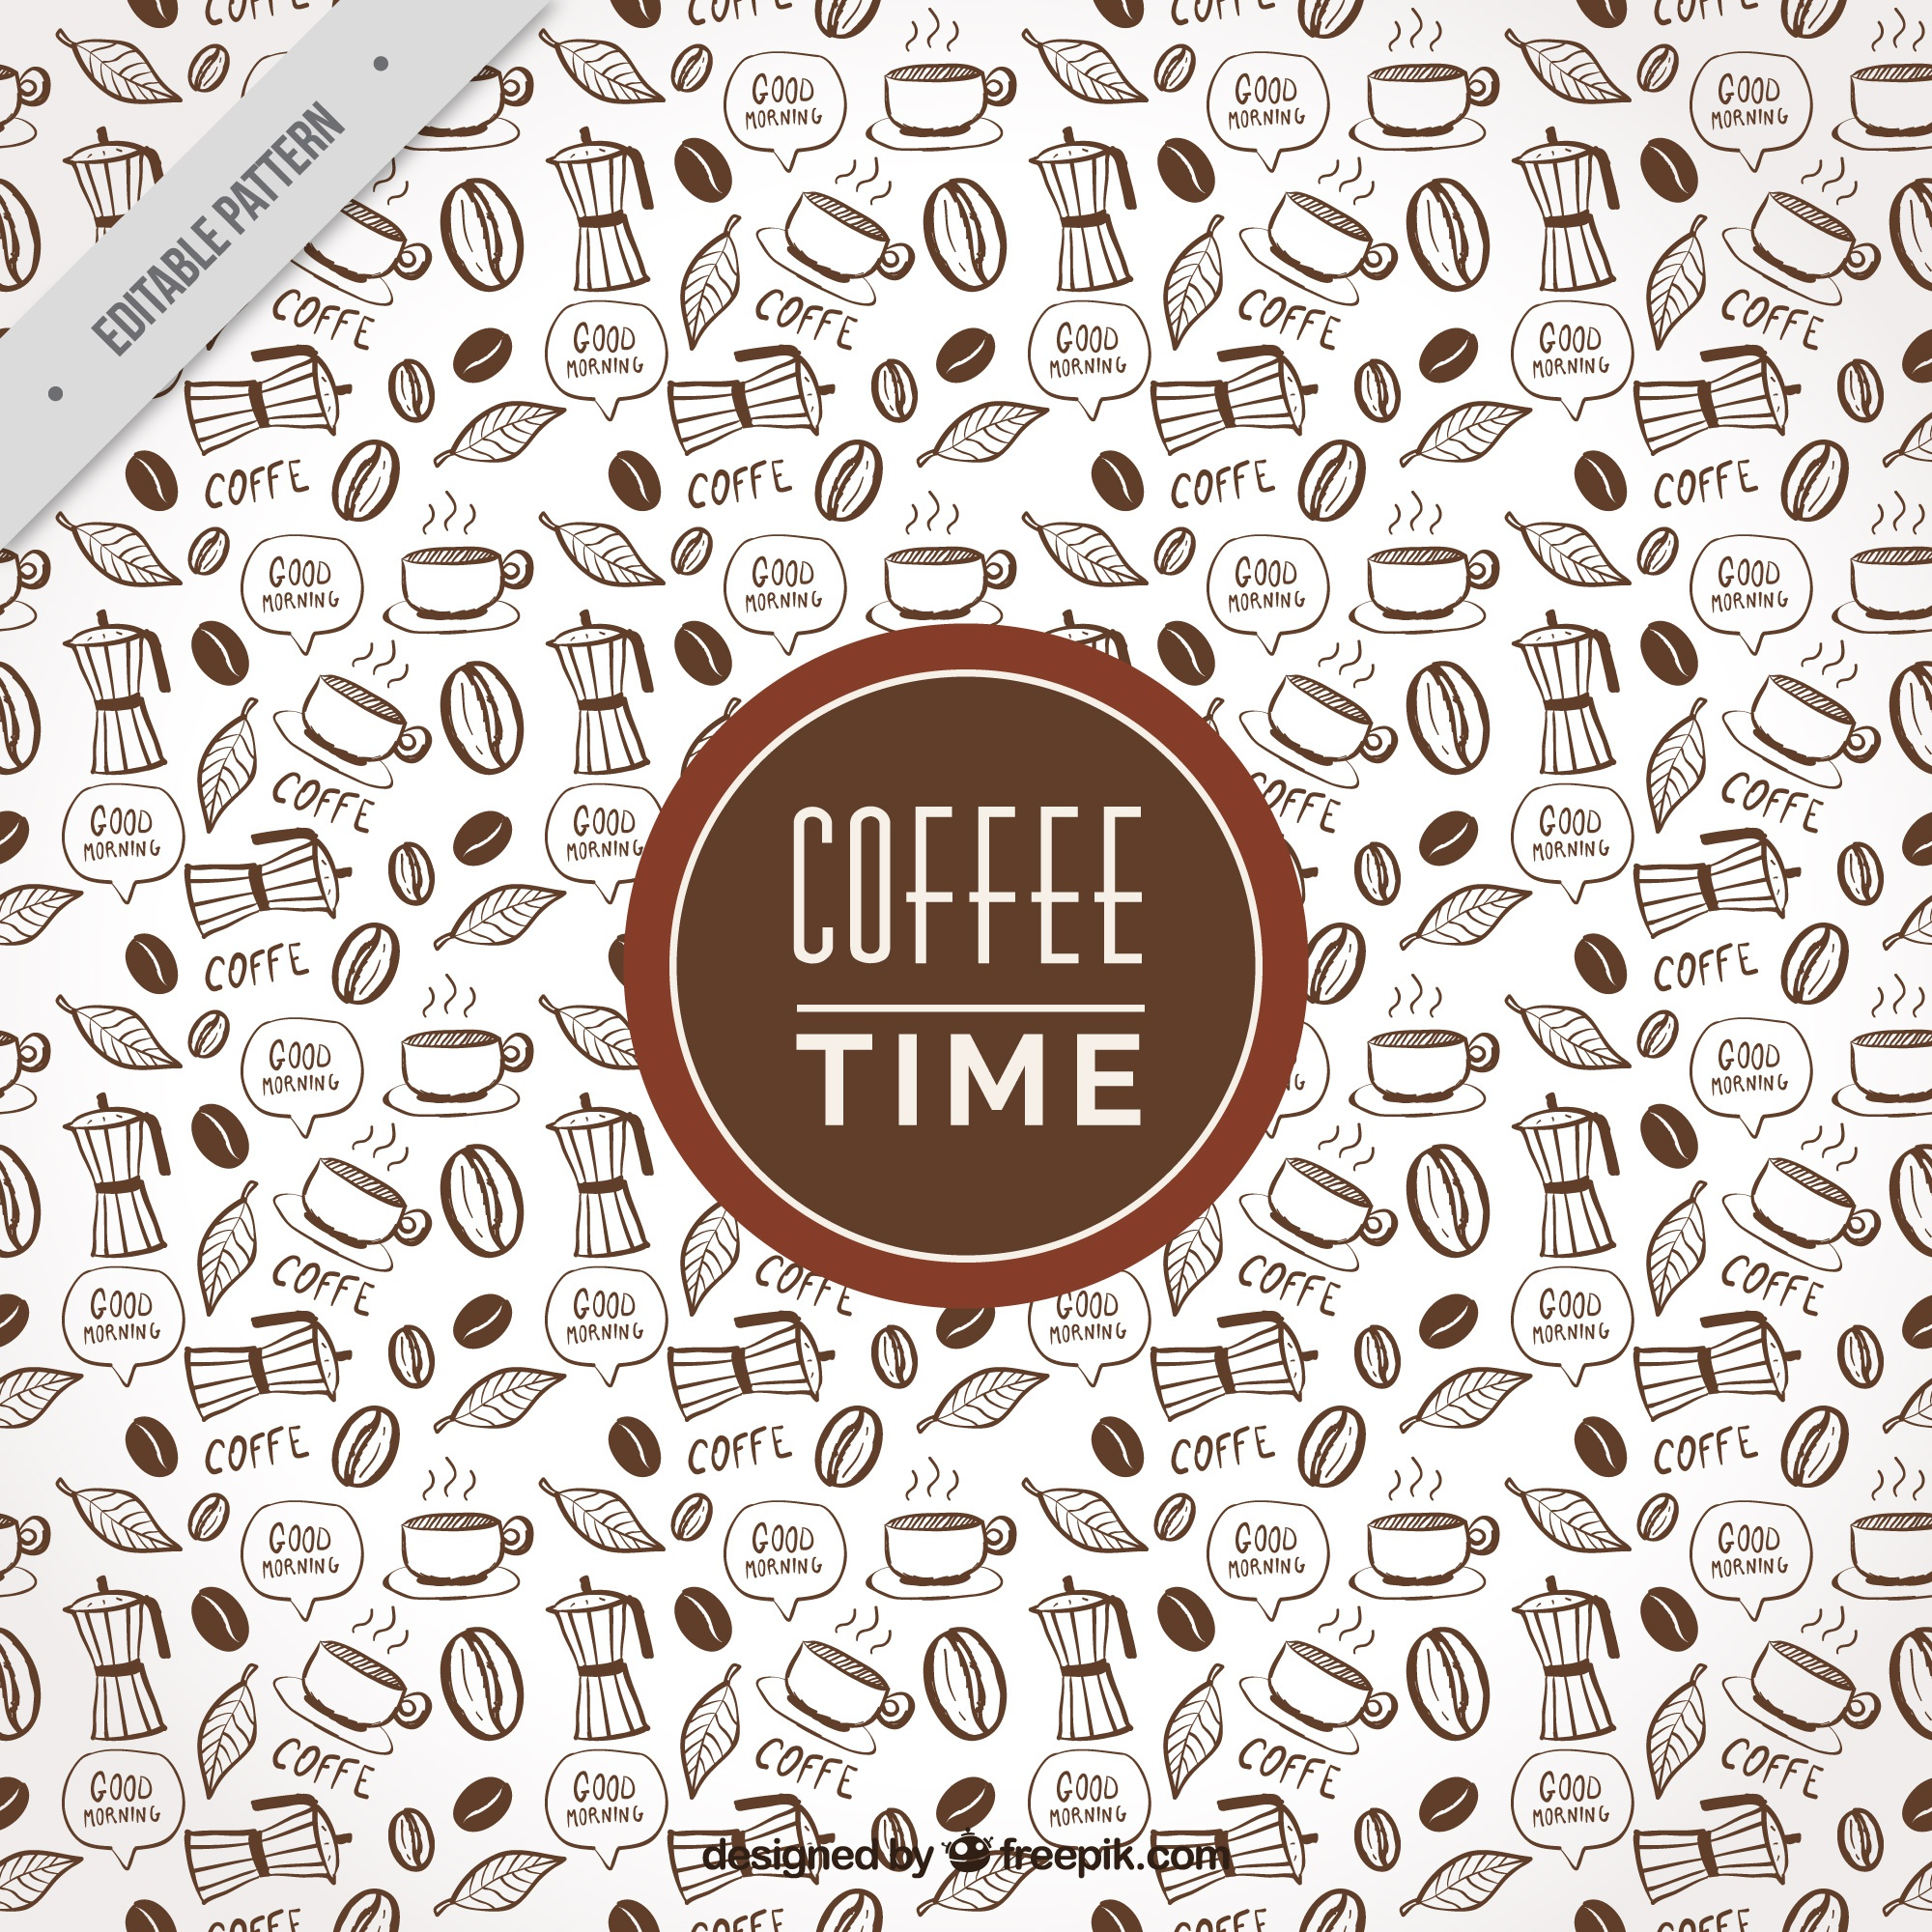 Fantastic coffee pattern with decorative items